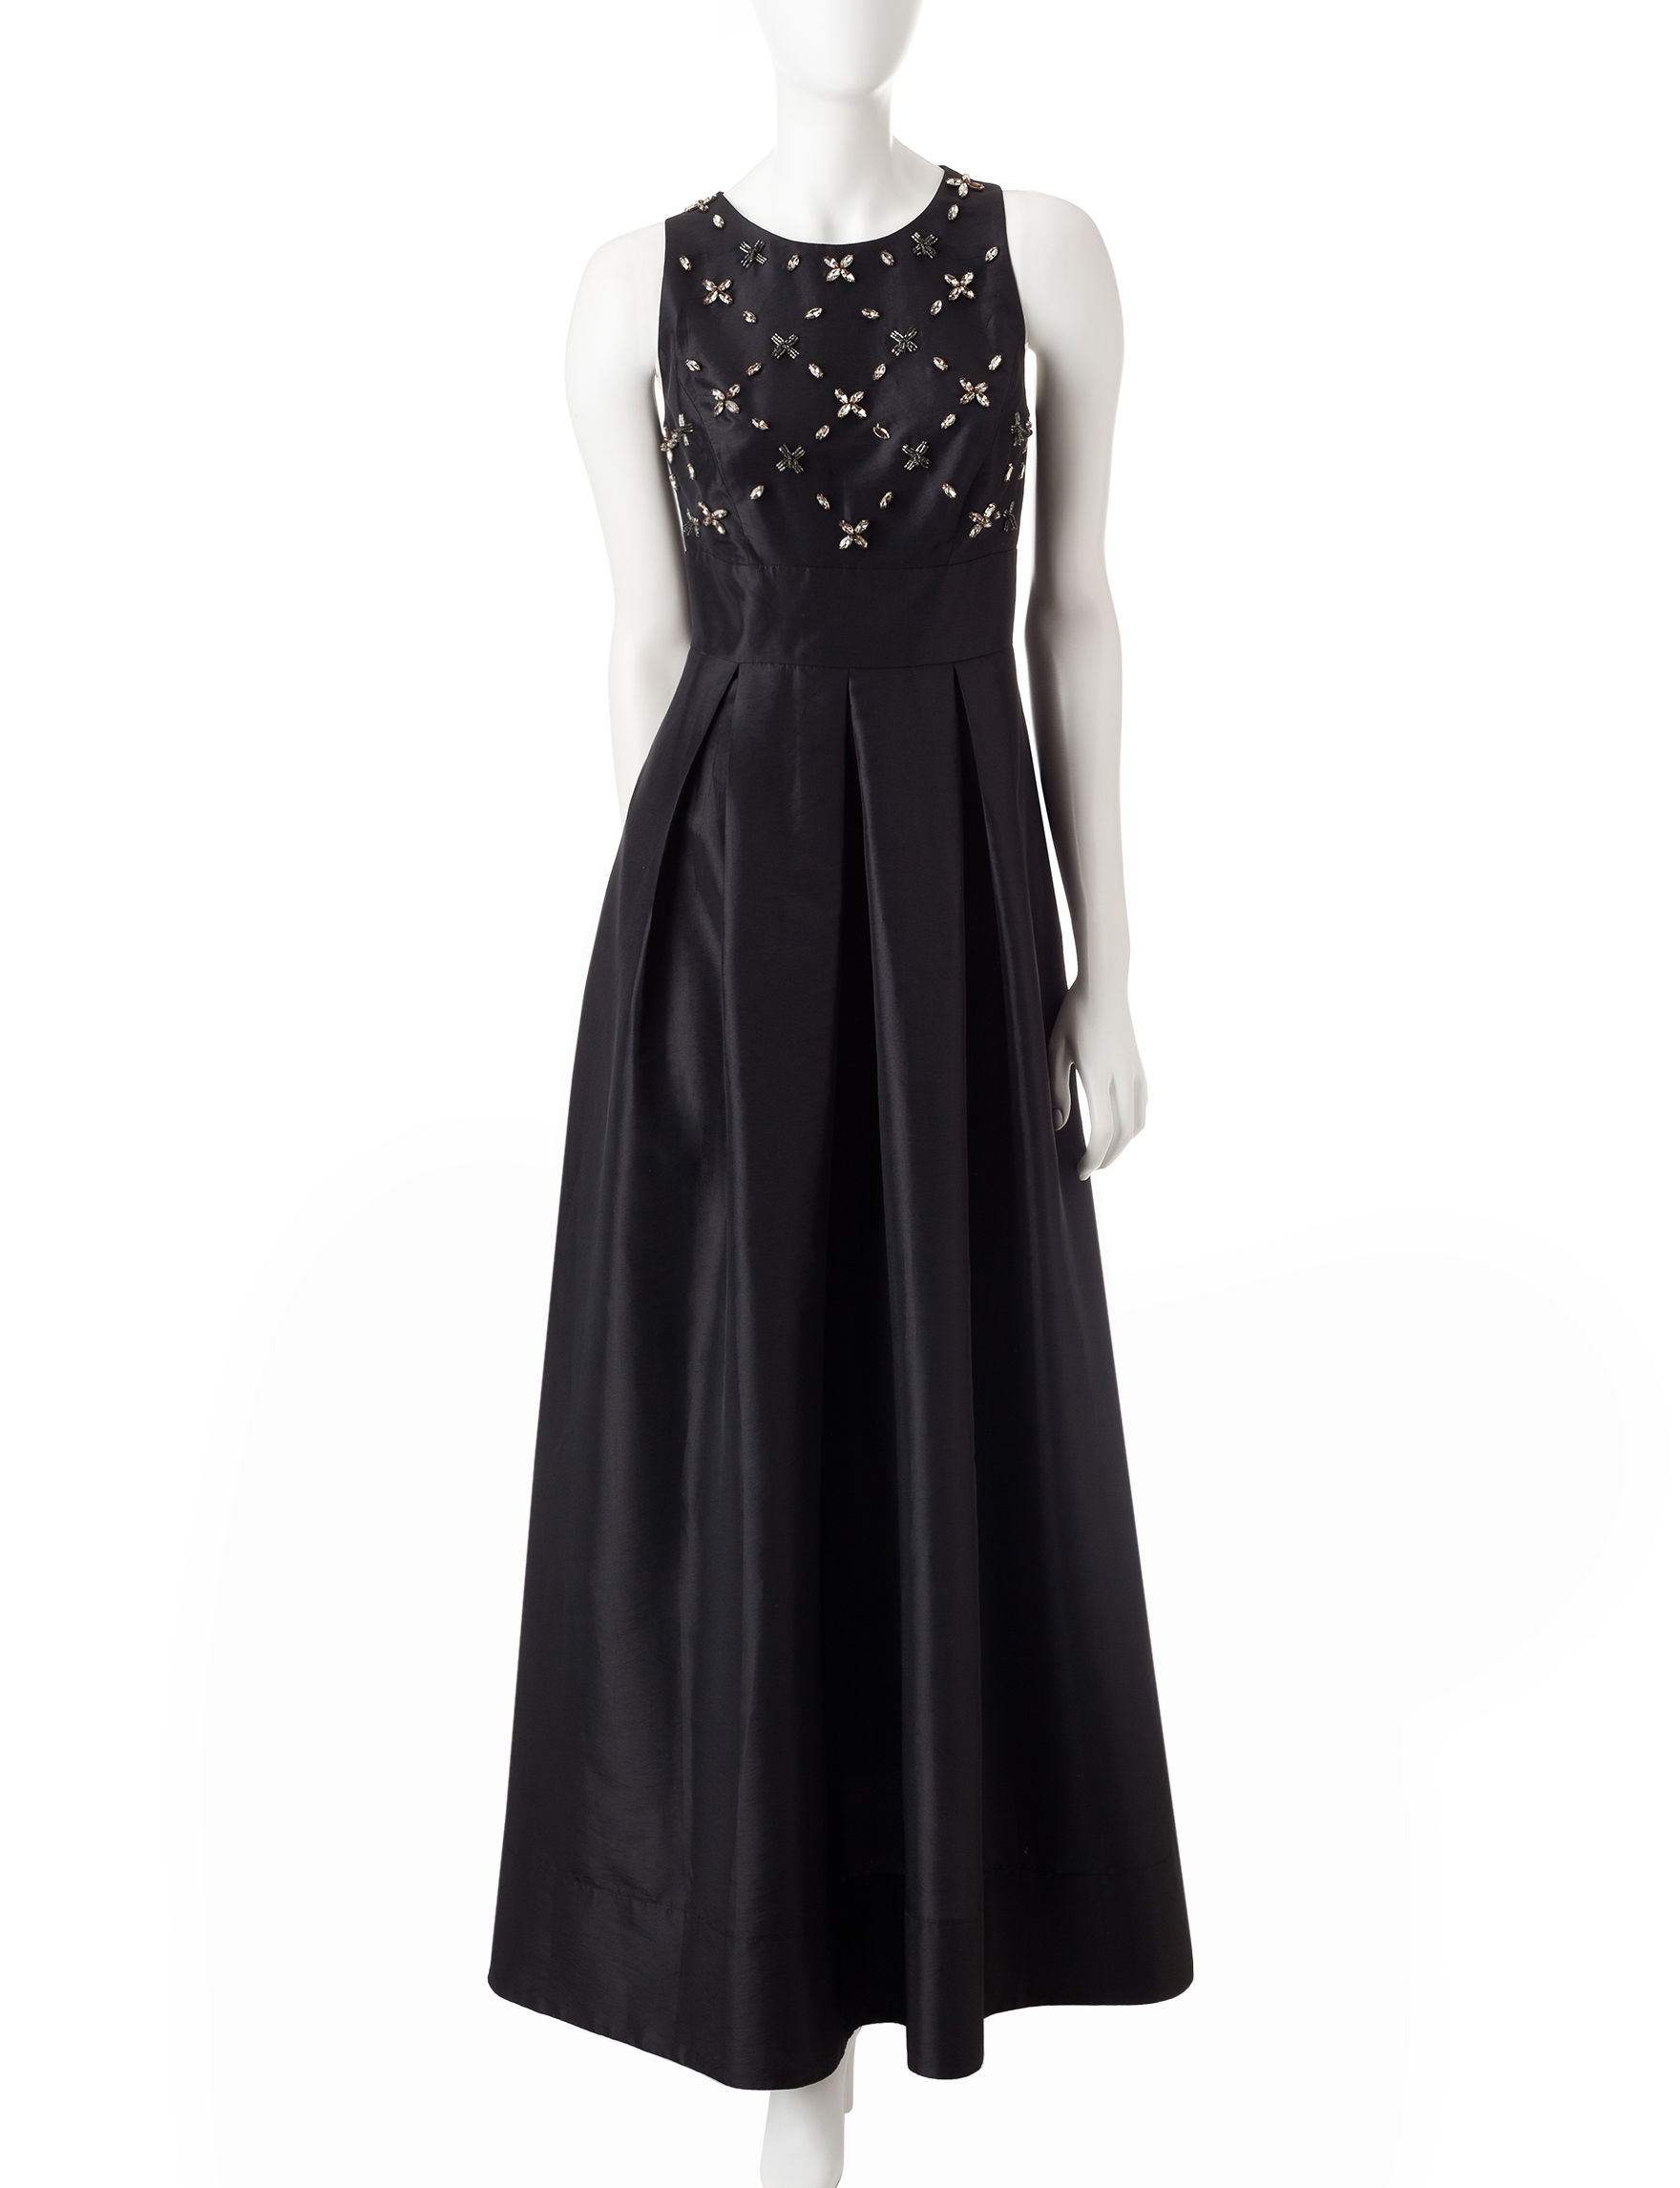 Sangria Black Evening & Formal A-line Dresses